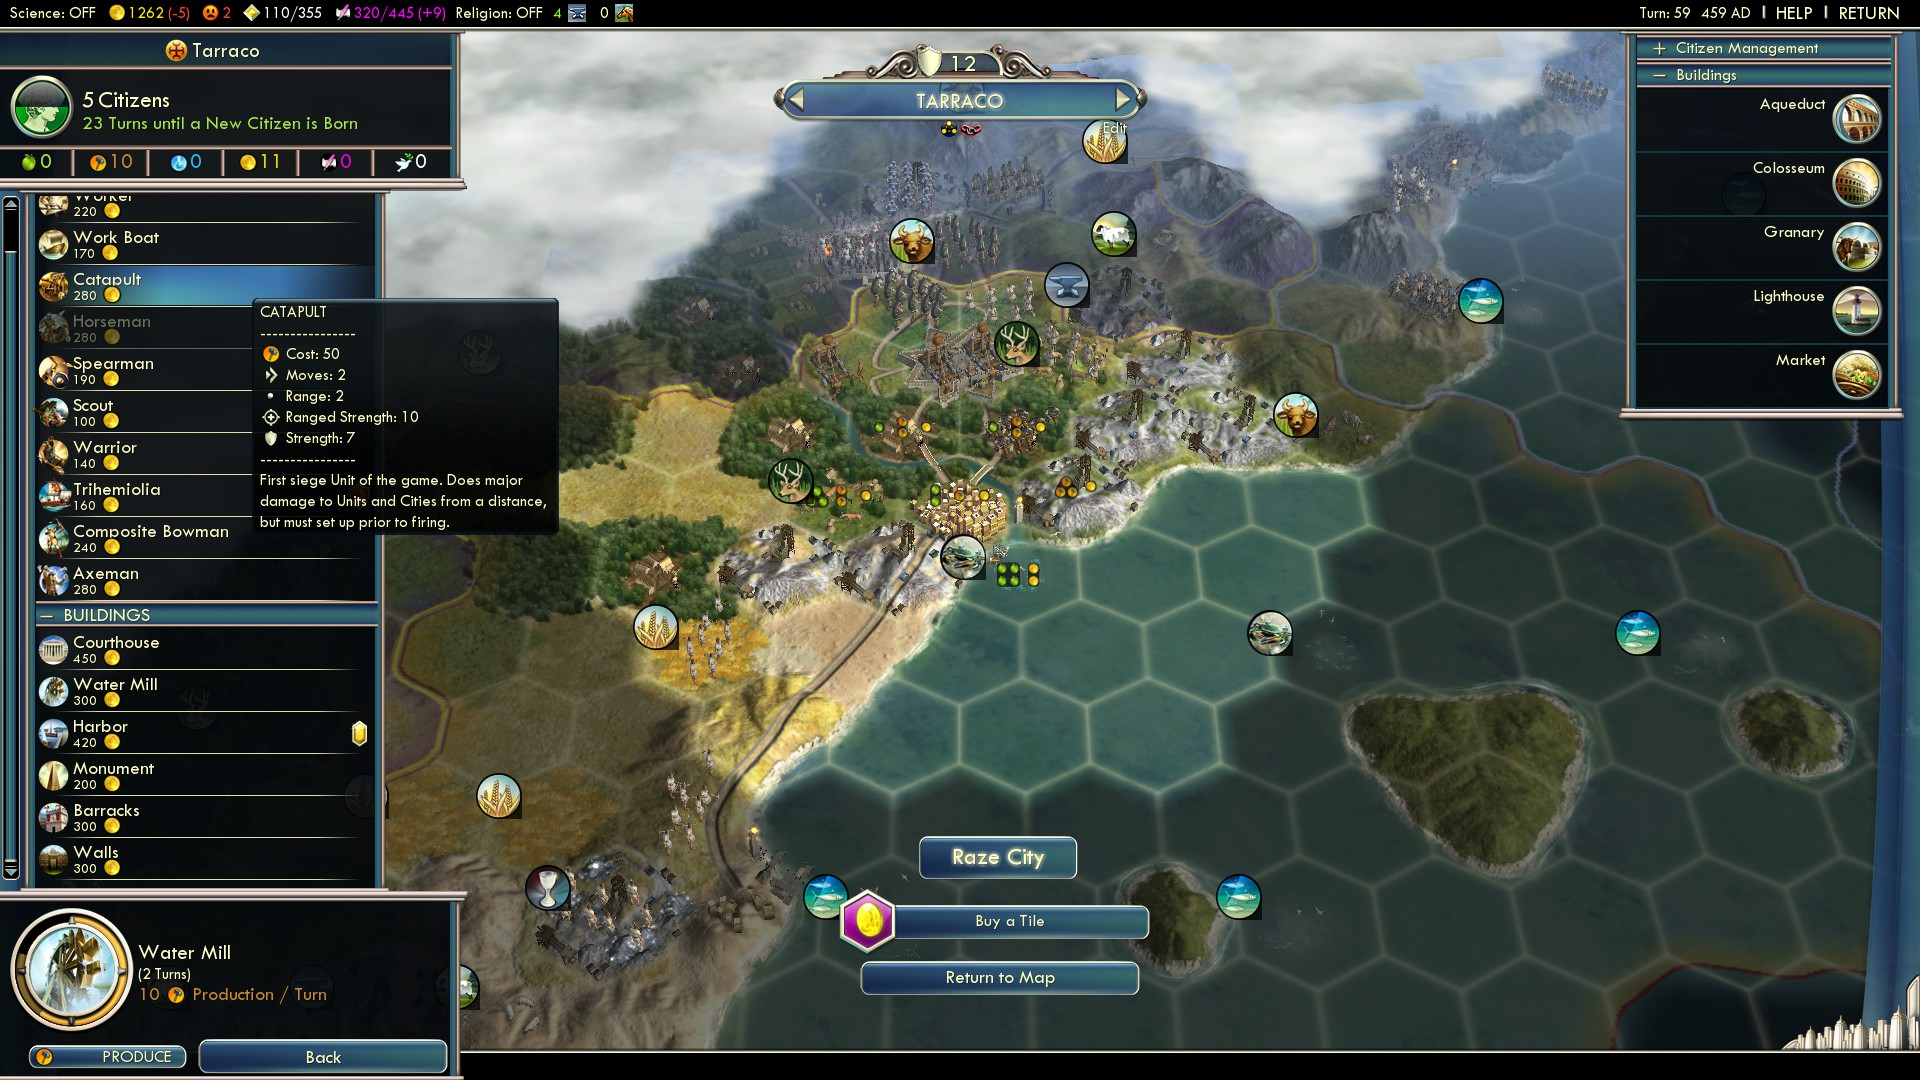 Civilization 5 Fall of Rome Vandals Deity - Buy some Catapults